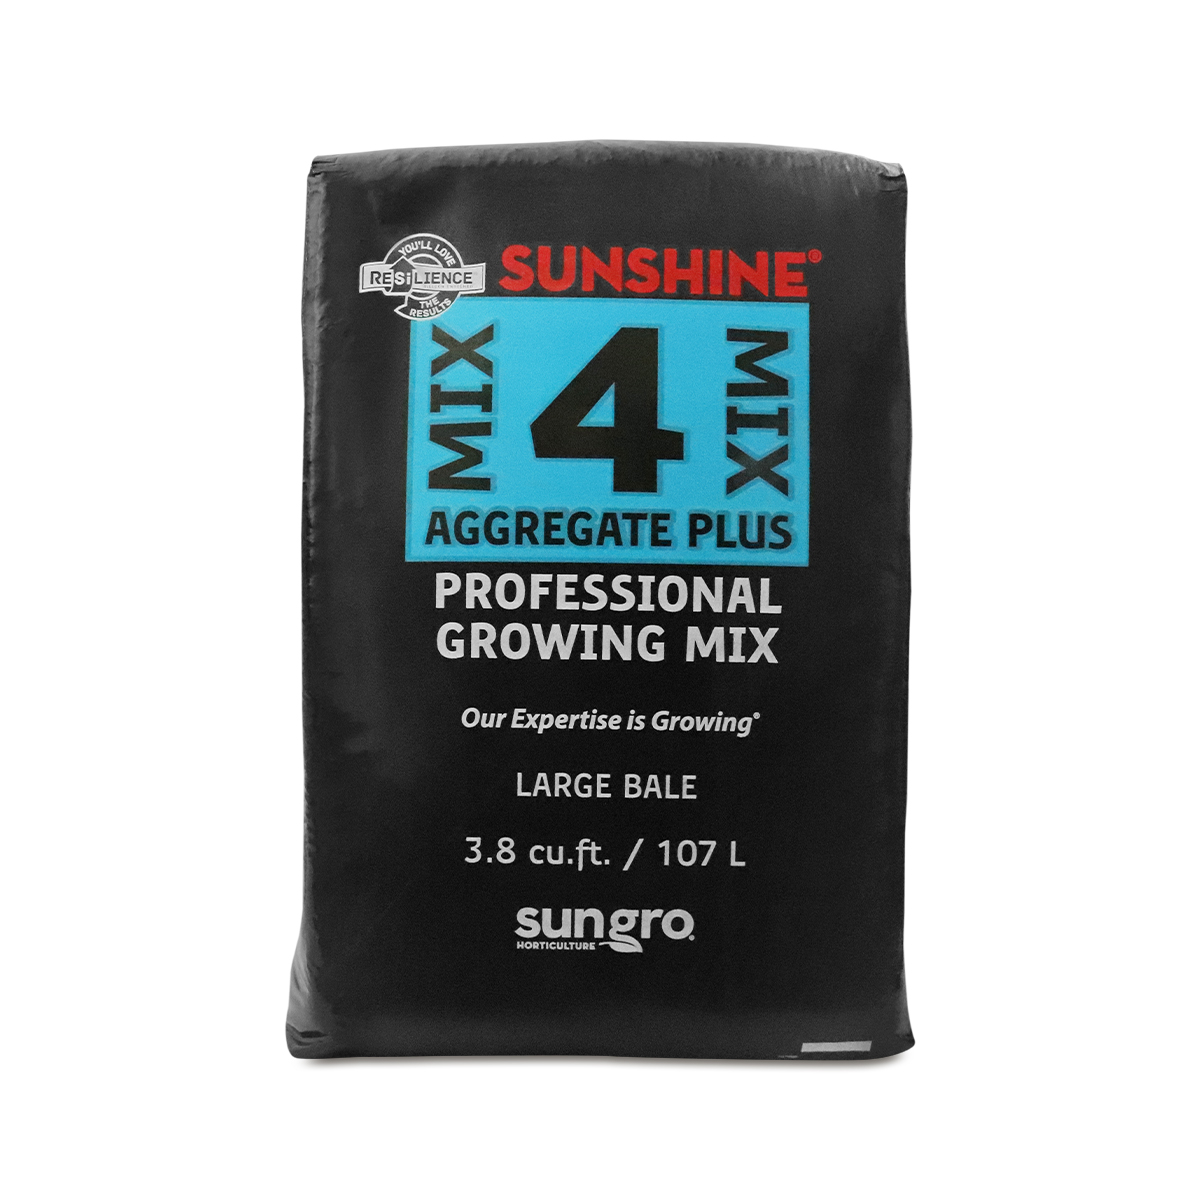 Sungro Sunshine 4 Aggregate Plus